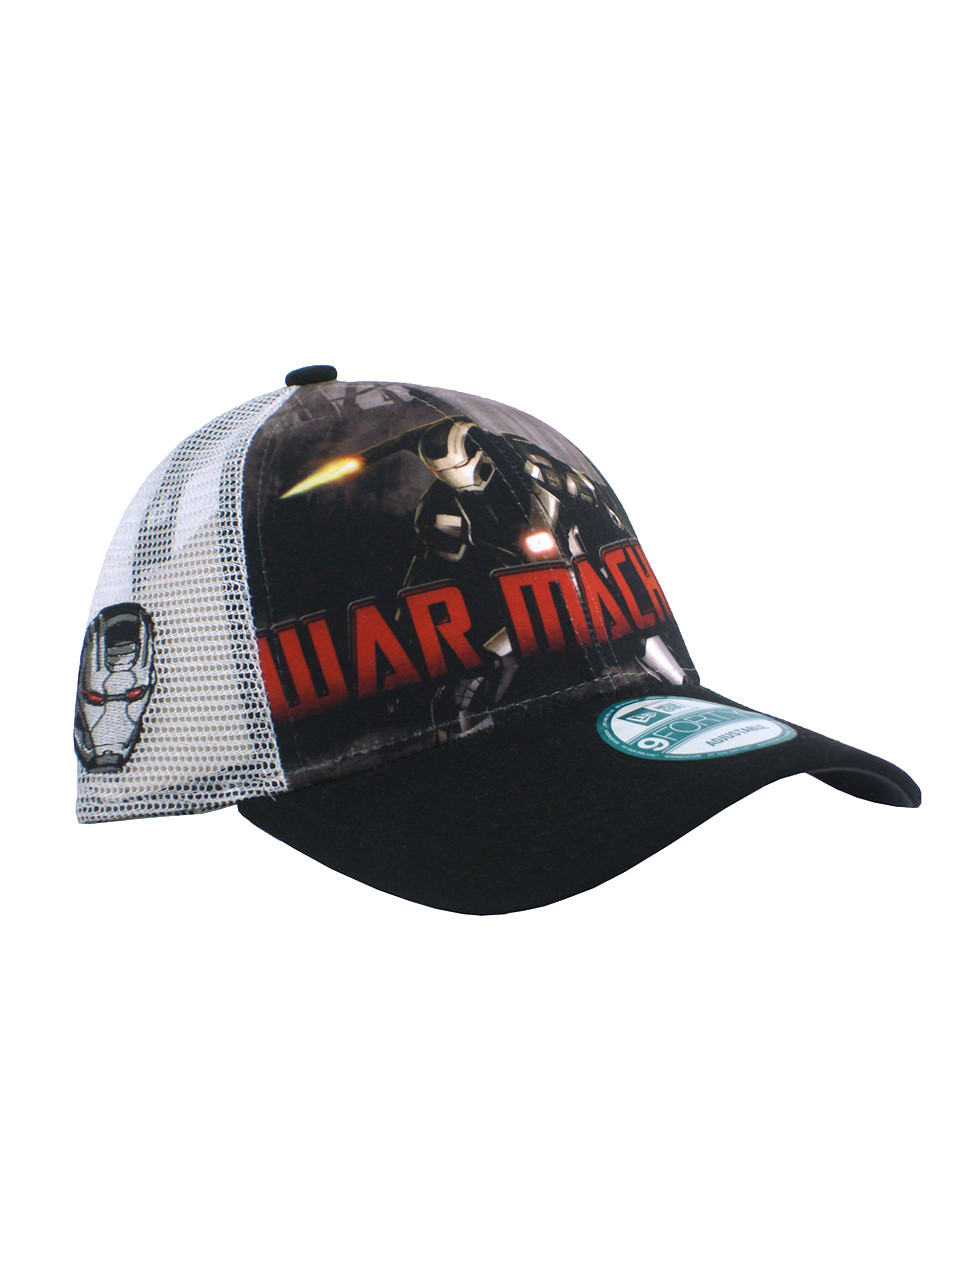 New Era Iron Man 3 War Machine 9fifty A-Frame Snapback Adjustible ... 6537284fd7d2